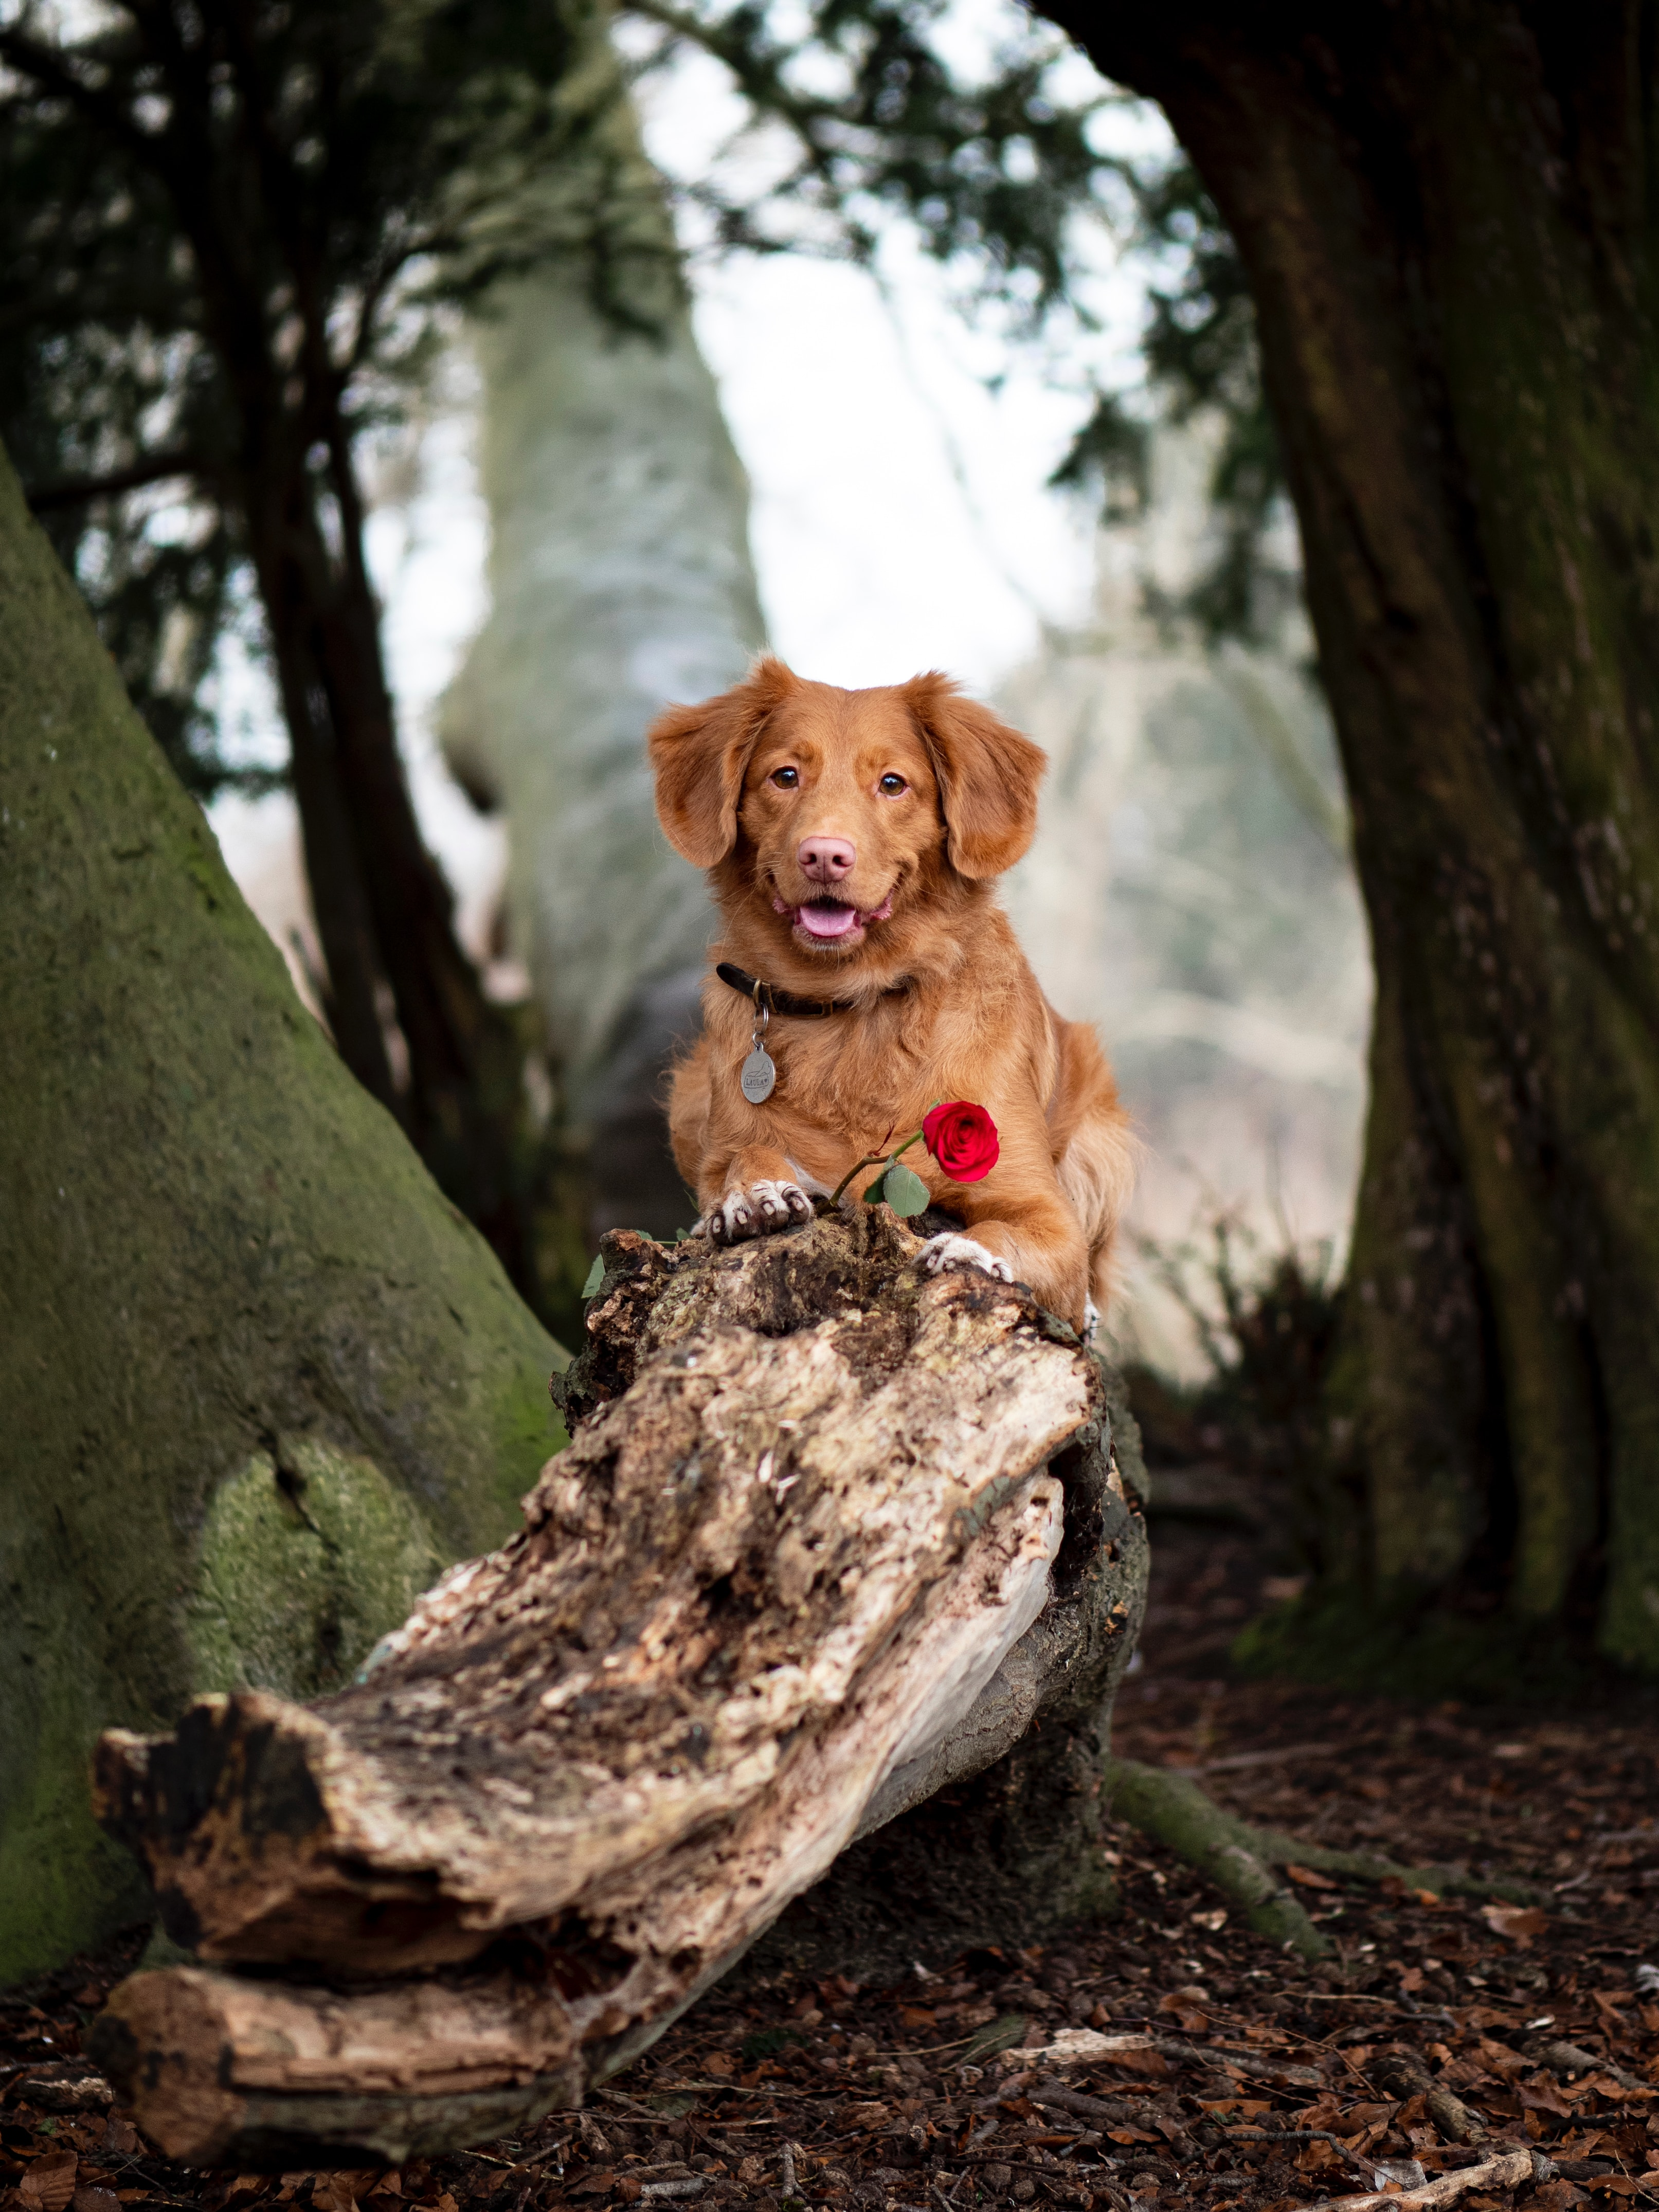 105862 download wallpaper Animals, Golden Retriever, Dog, Brown, Pet, Flower screensavers and pictures for free